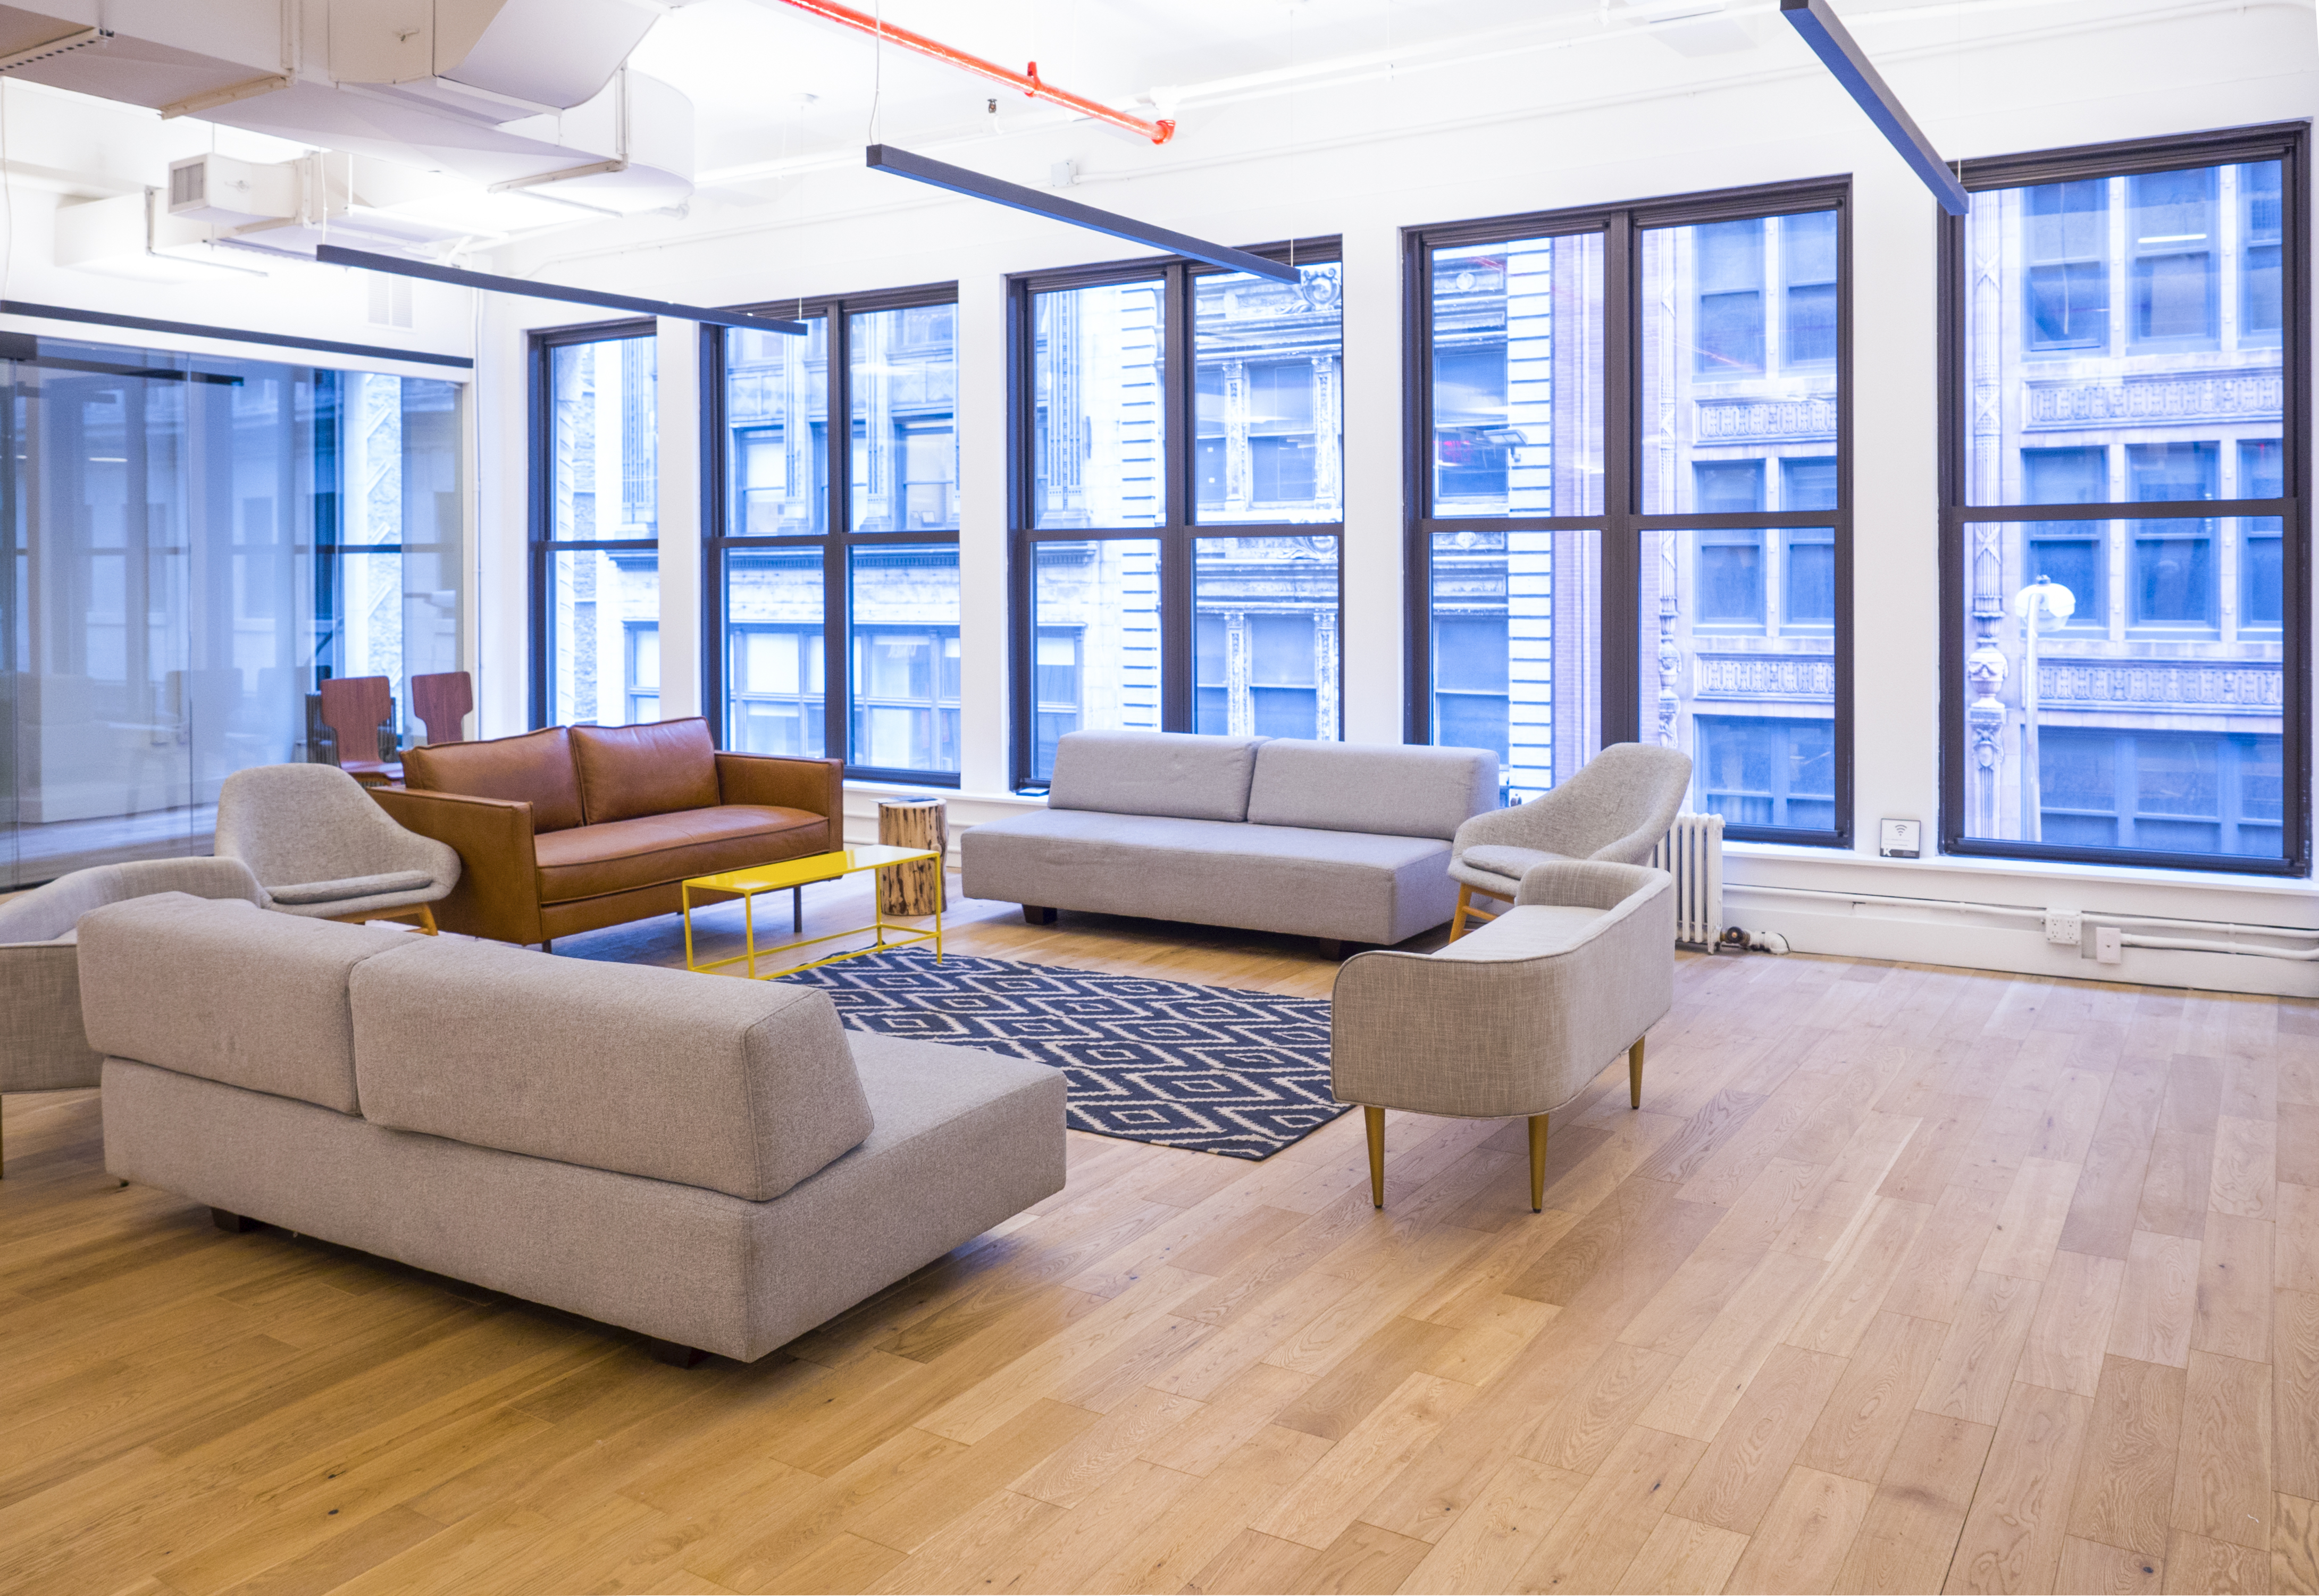 Full Venue event space at Knotel Bryant Park - Events Loft in New York City, NYC, NY/NJ Area